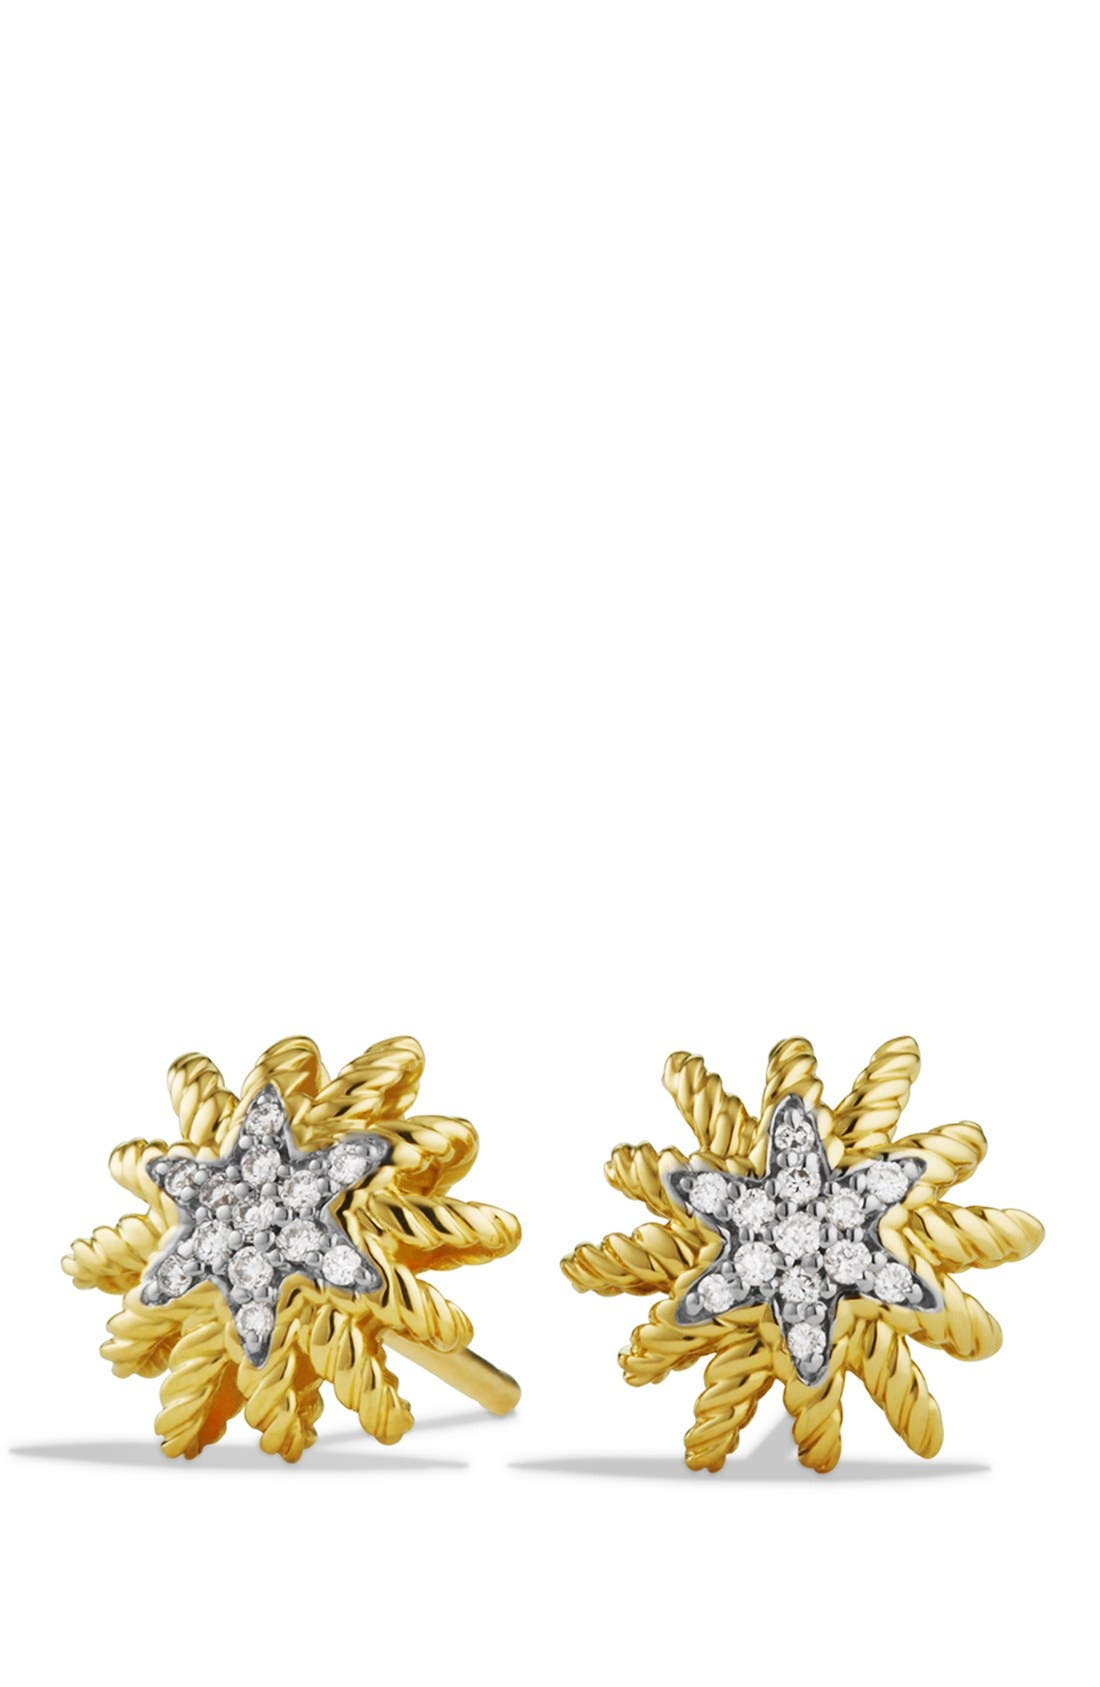 'Starburst' Mini Earrings with Diamonds in Gold,                             Main thumbnail 1, color,                             YELLOW GOLD